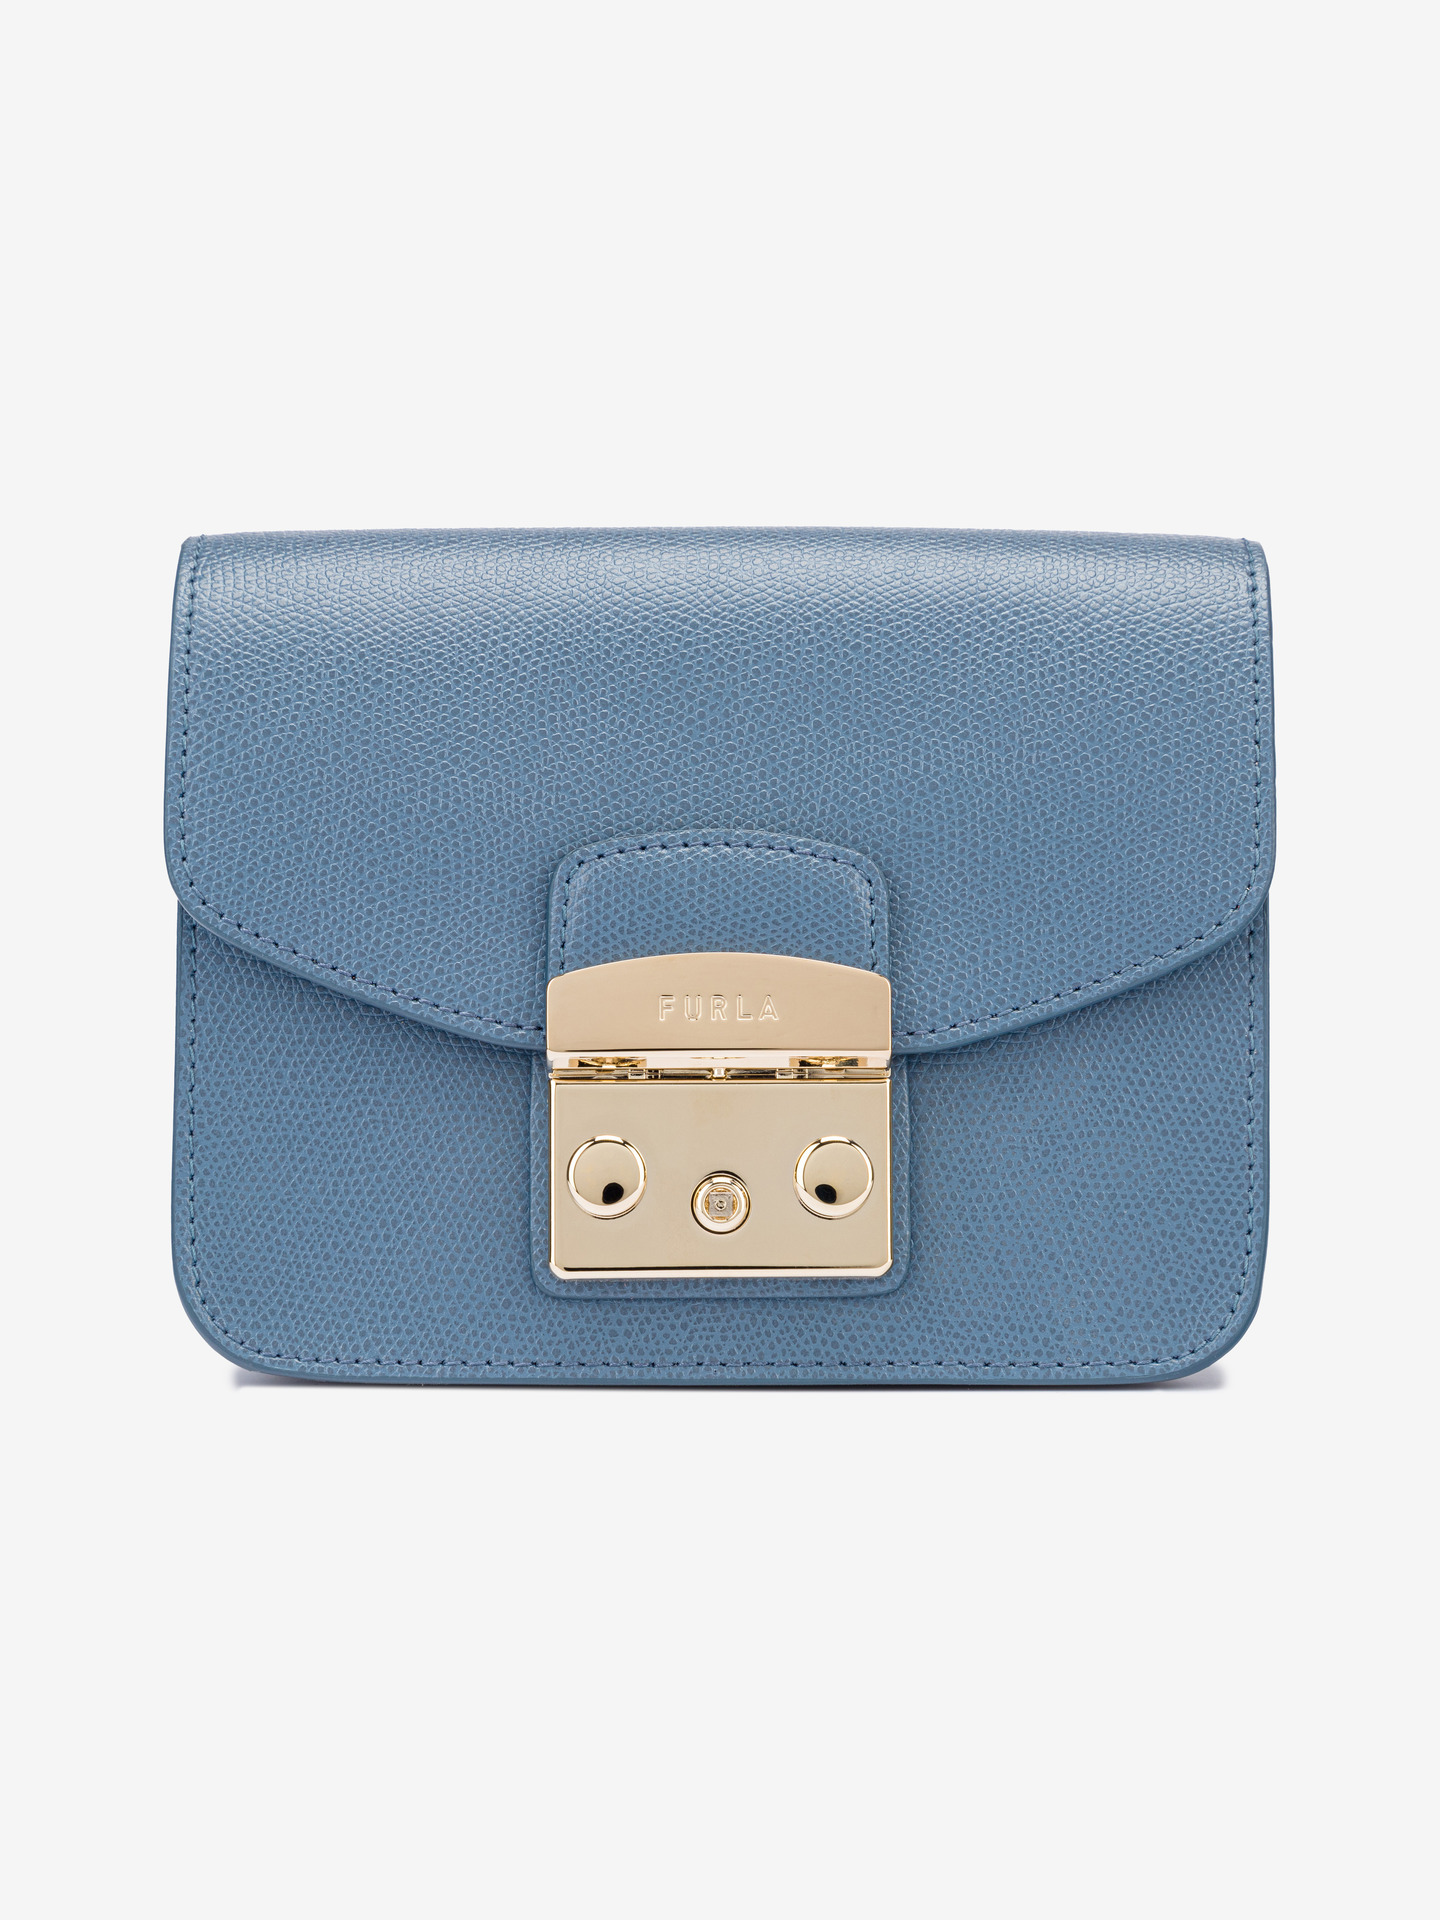 Metropolis Mini Cross body bag Furla Modrá